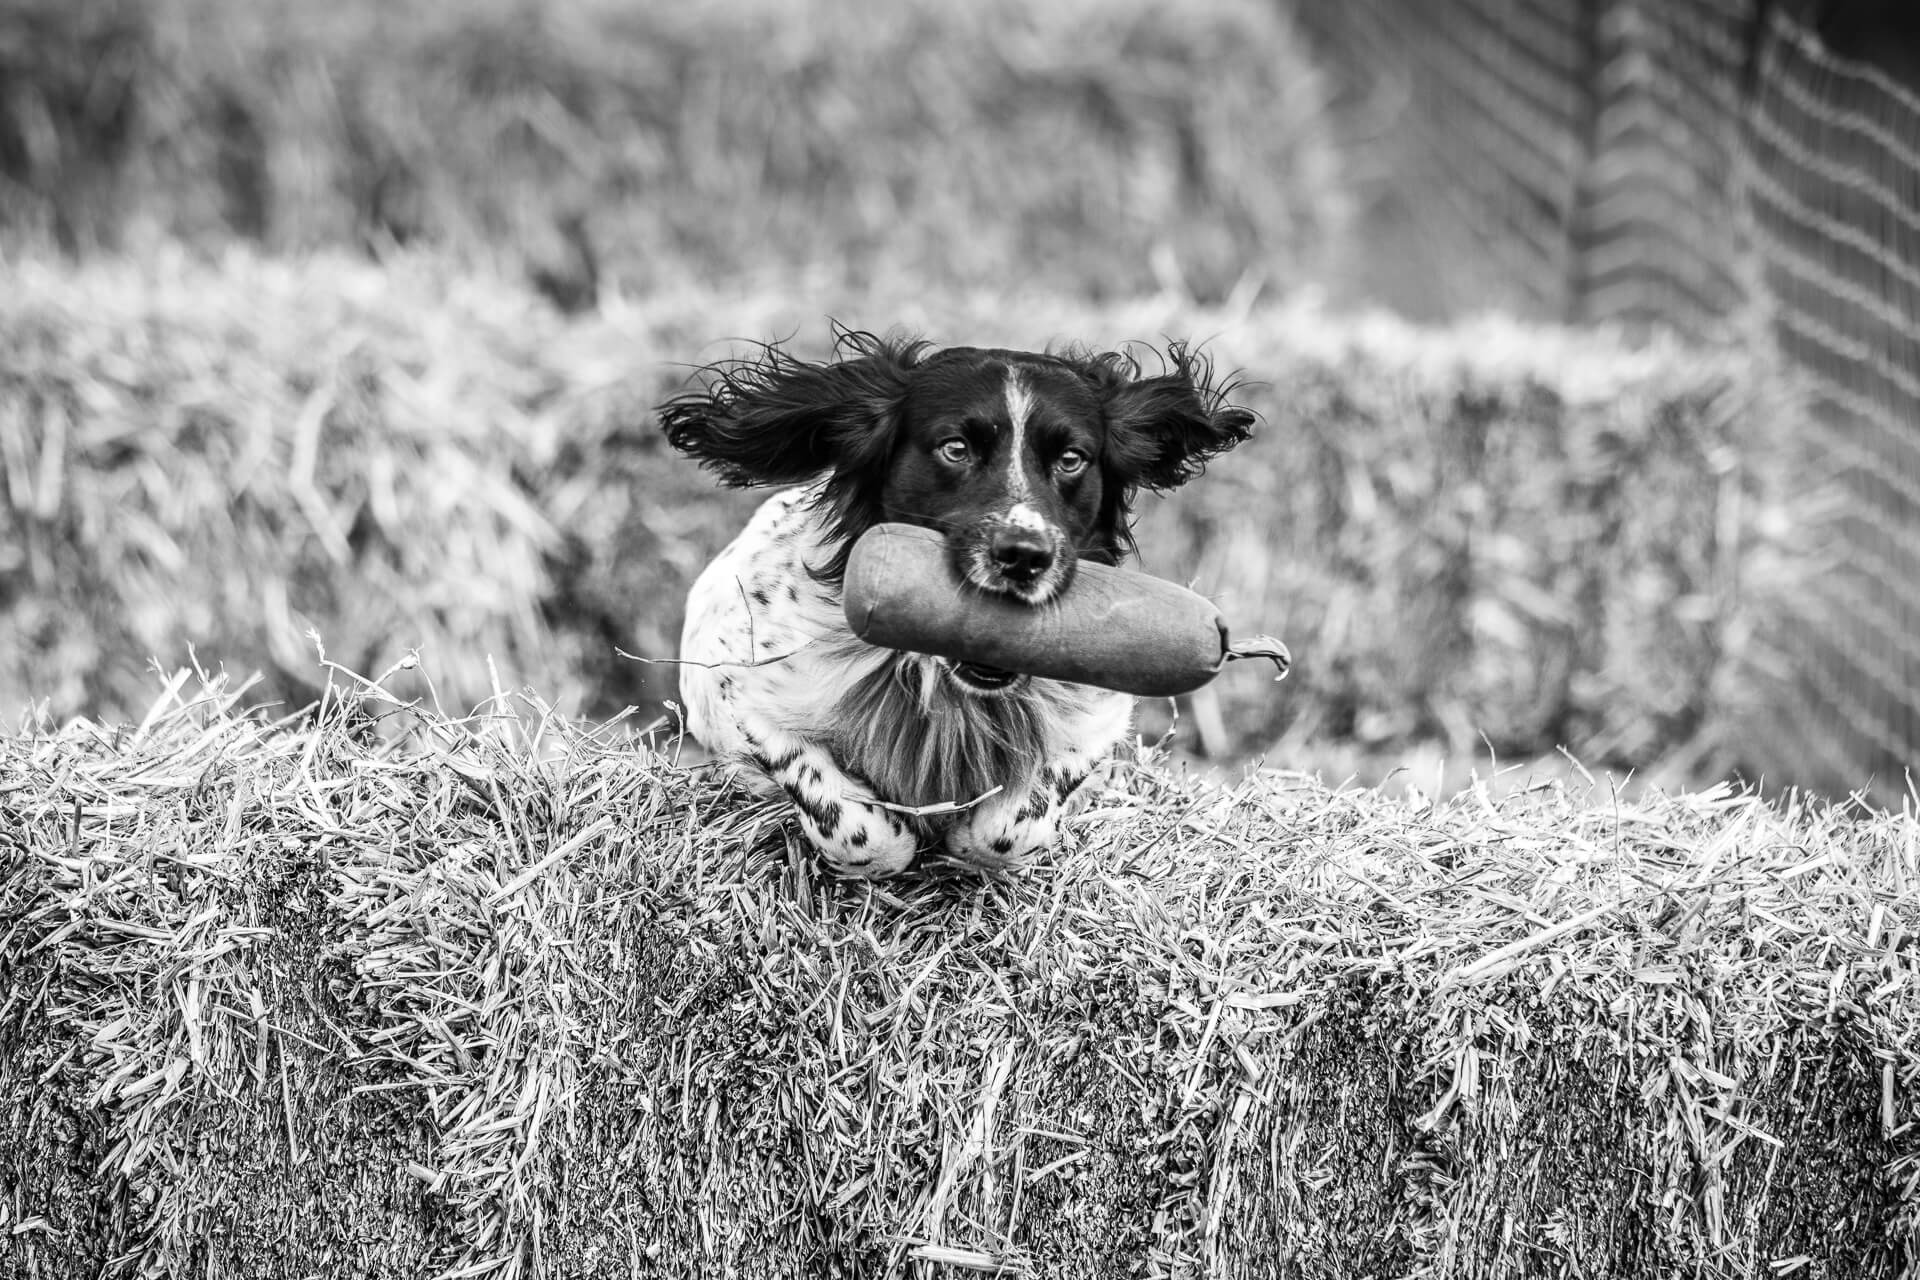 A close up black & white image of a Spaniel as he jumps a hay bale on the 'retrieve' phase of a gun dog competition at the 3 Counties Show Ground, Malvern. He is completely focussed on his mission, his ears fly out flat and his legs are tucked up underneath his chest as he jumps the bale obstacle, he has a 'dummy bird' grasped firmly in his mouth.